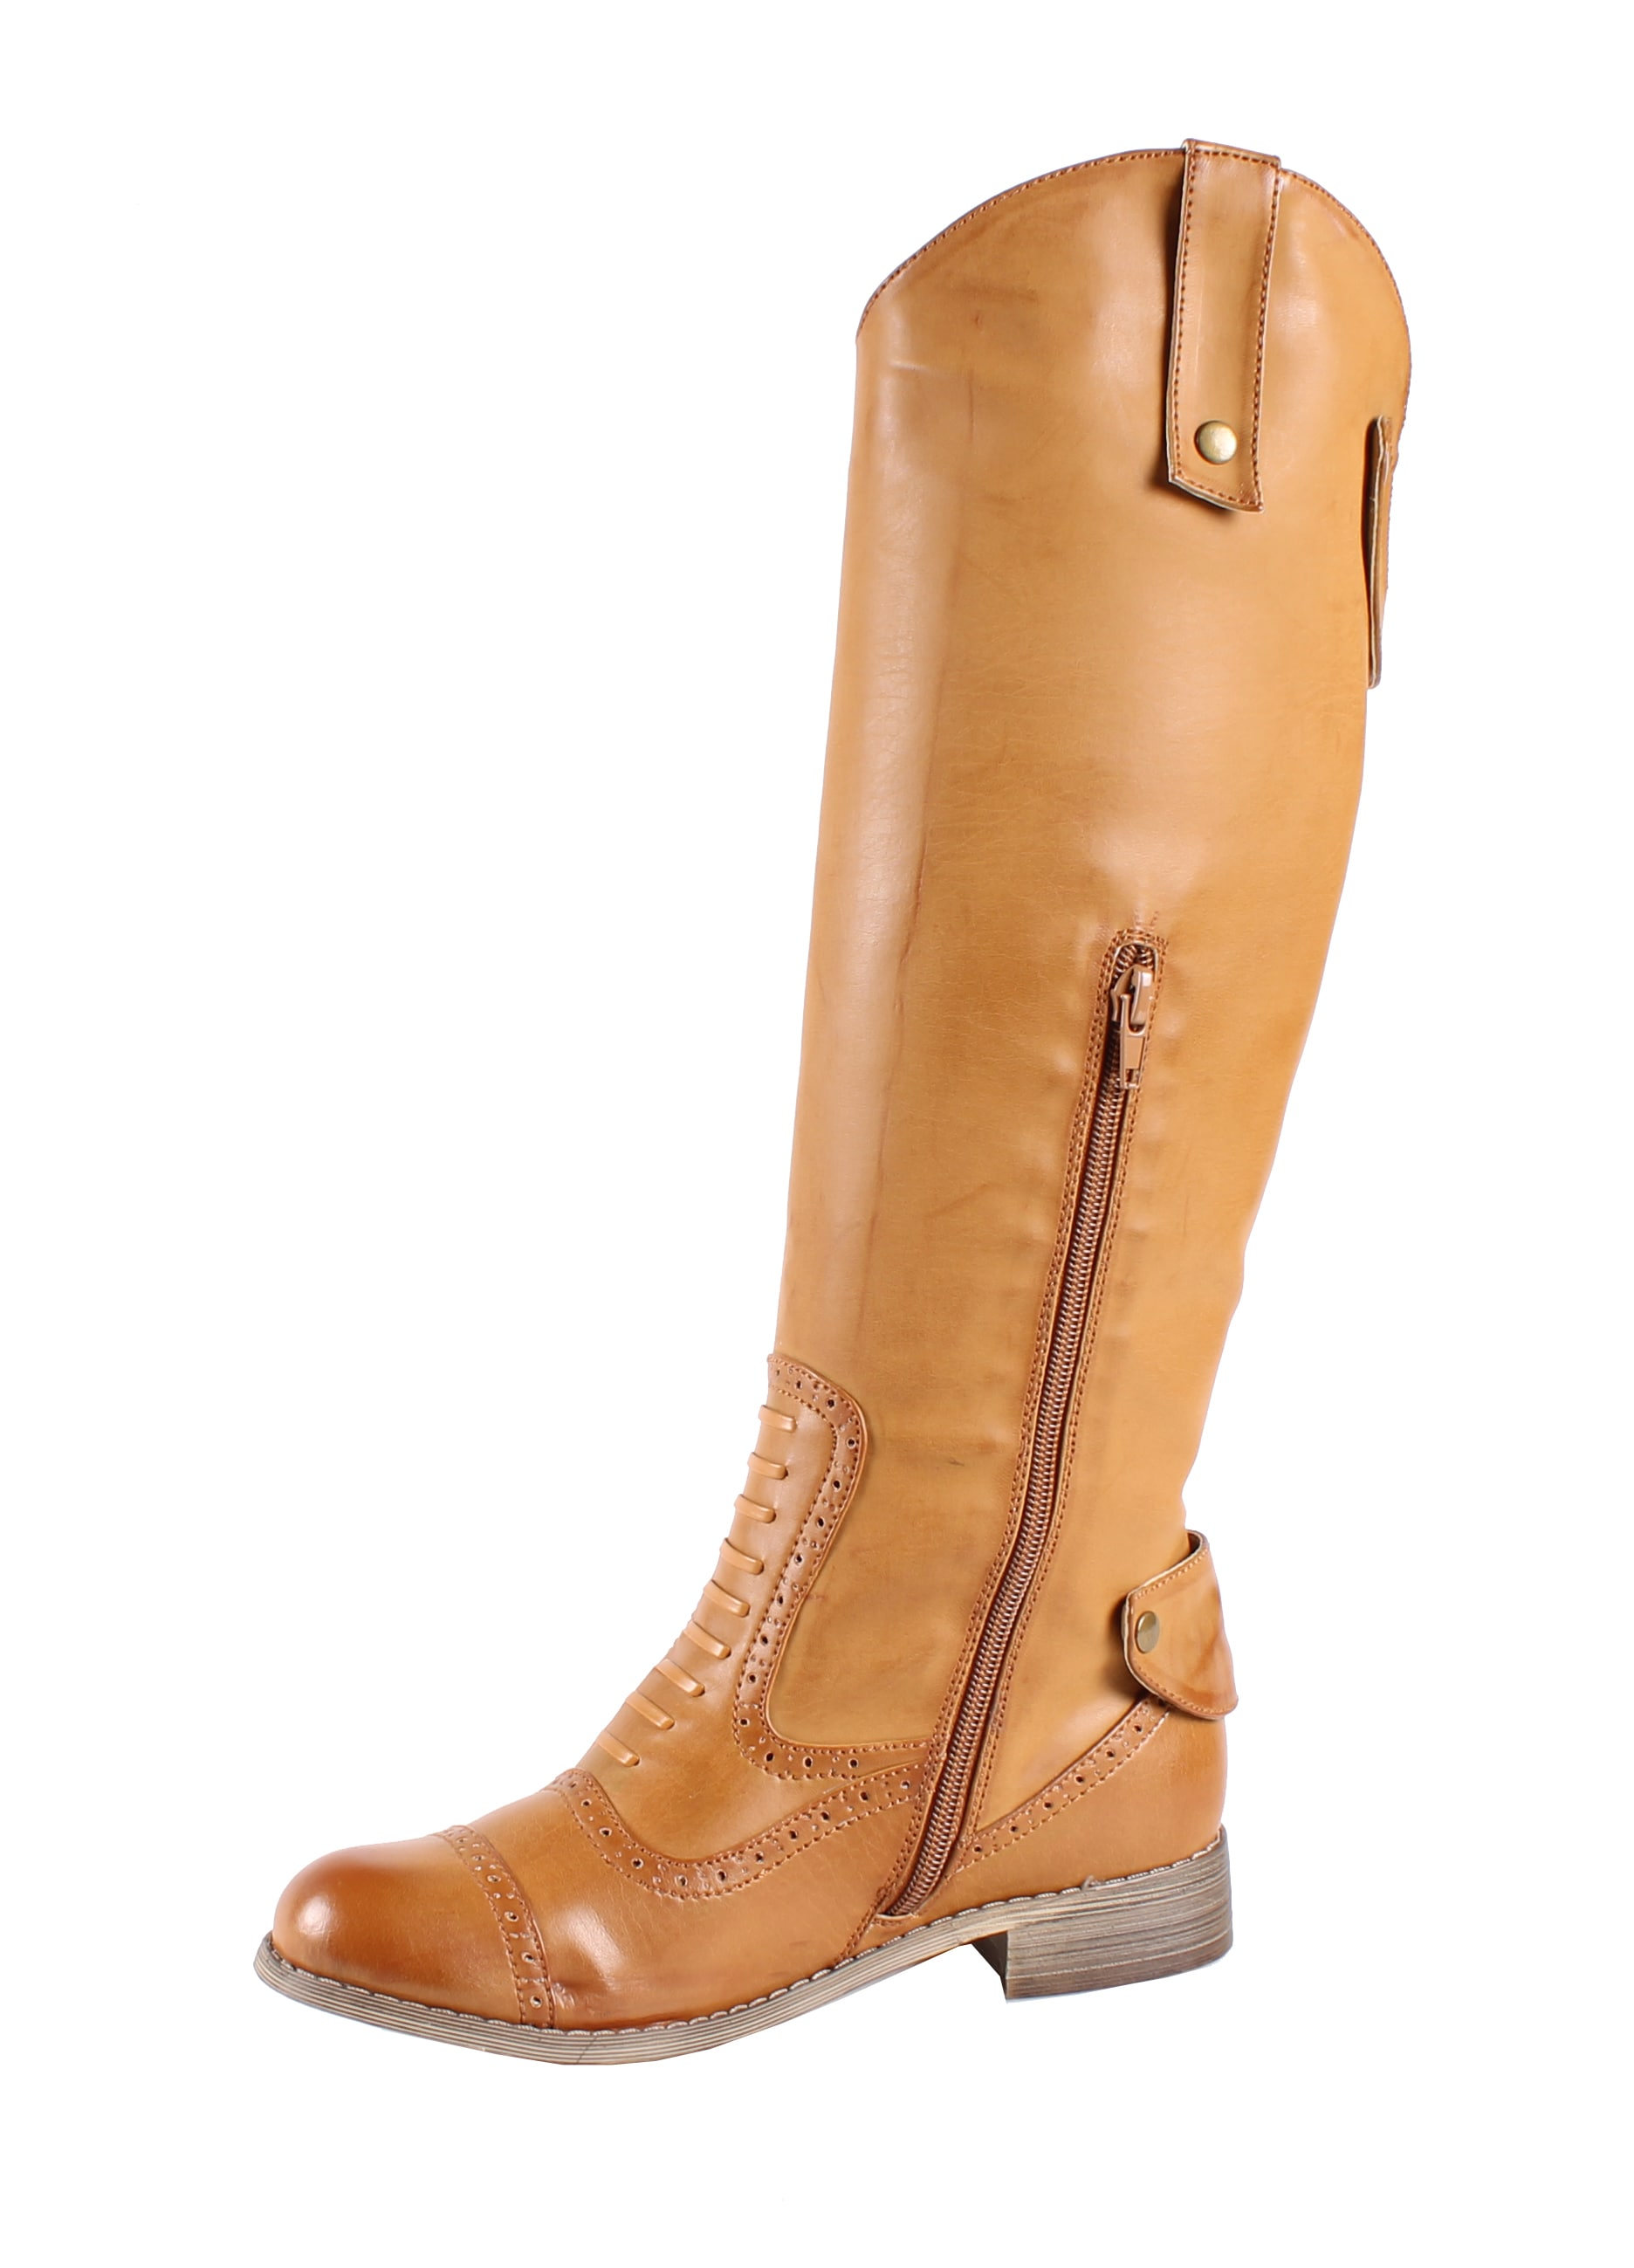 Jacobies by Beston Women's 'Cowgirl-4' Knee High Riding Boots